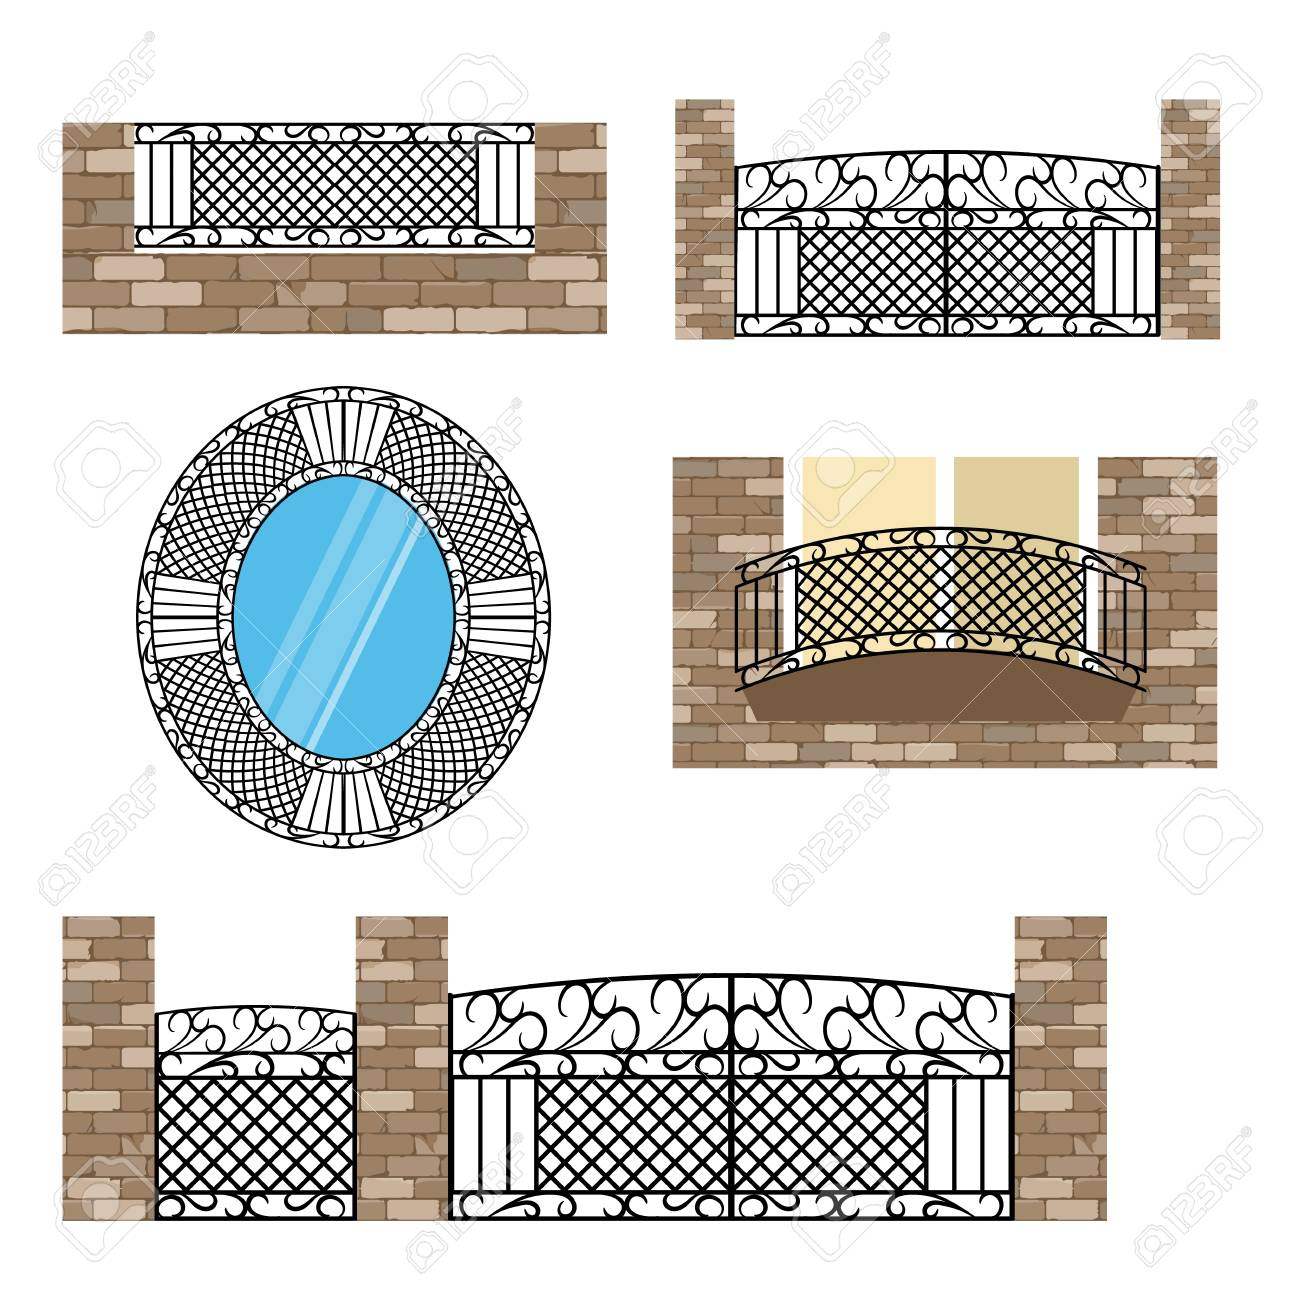 Forged metal elements with ornament  For steel fence, gates and